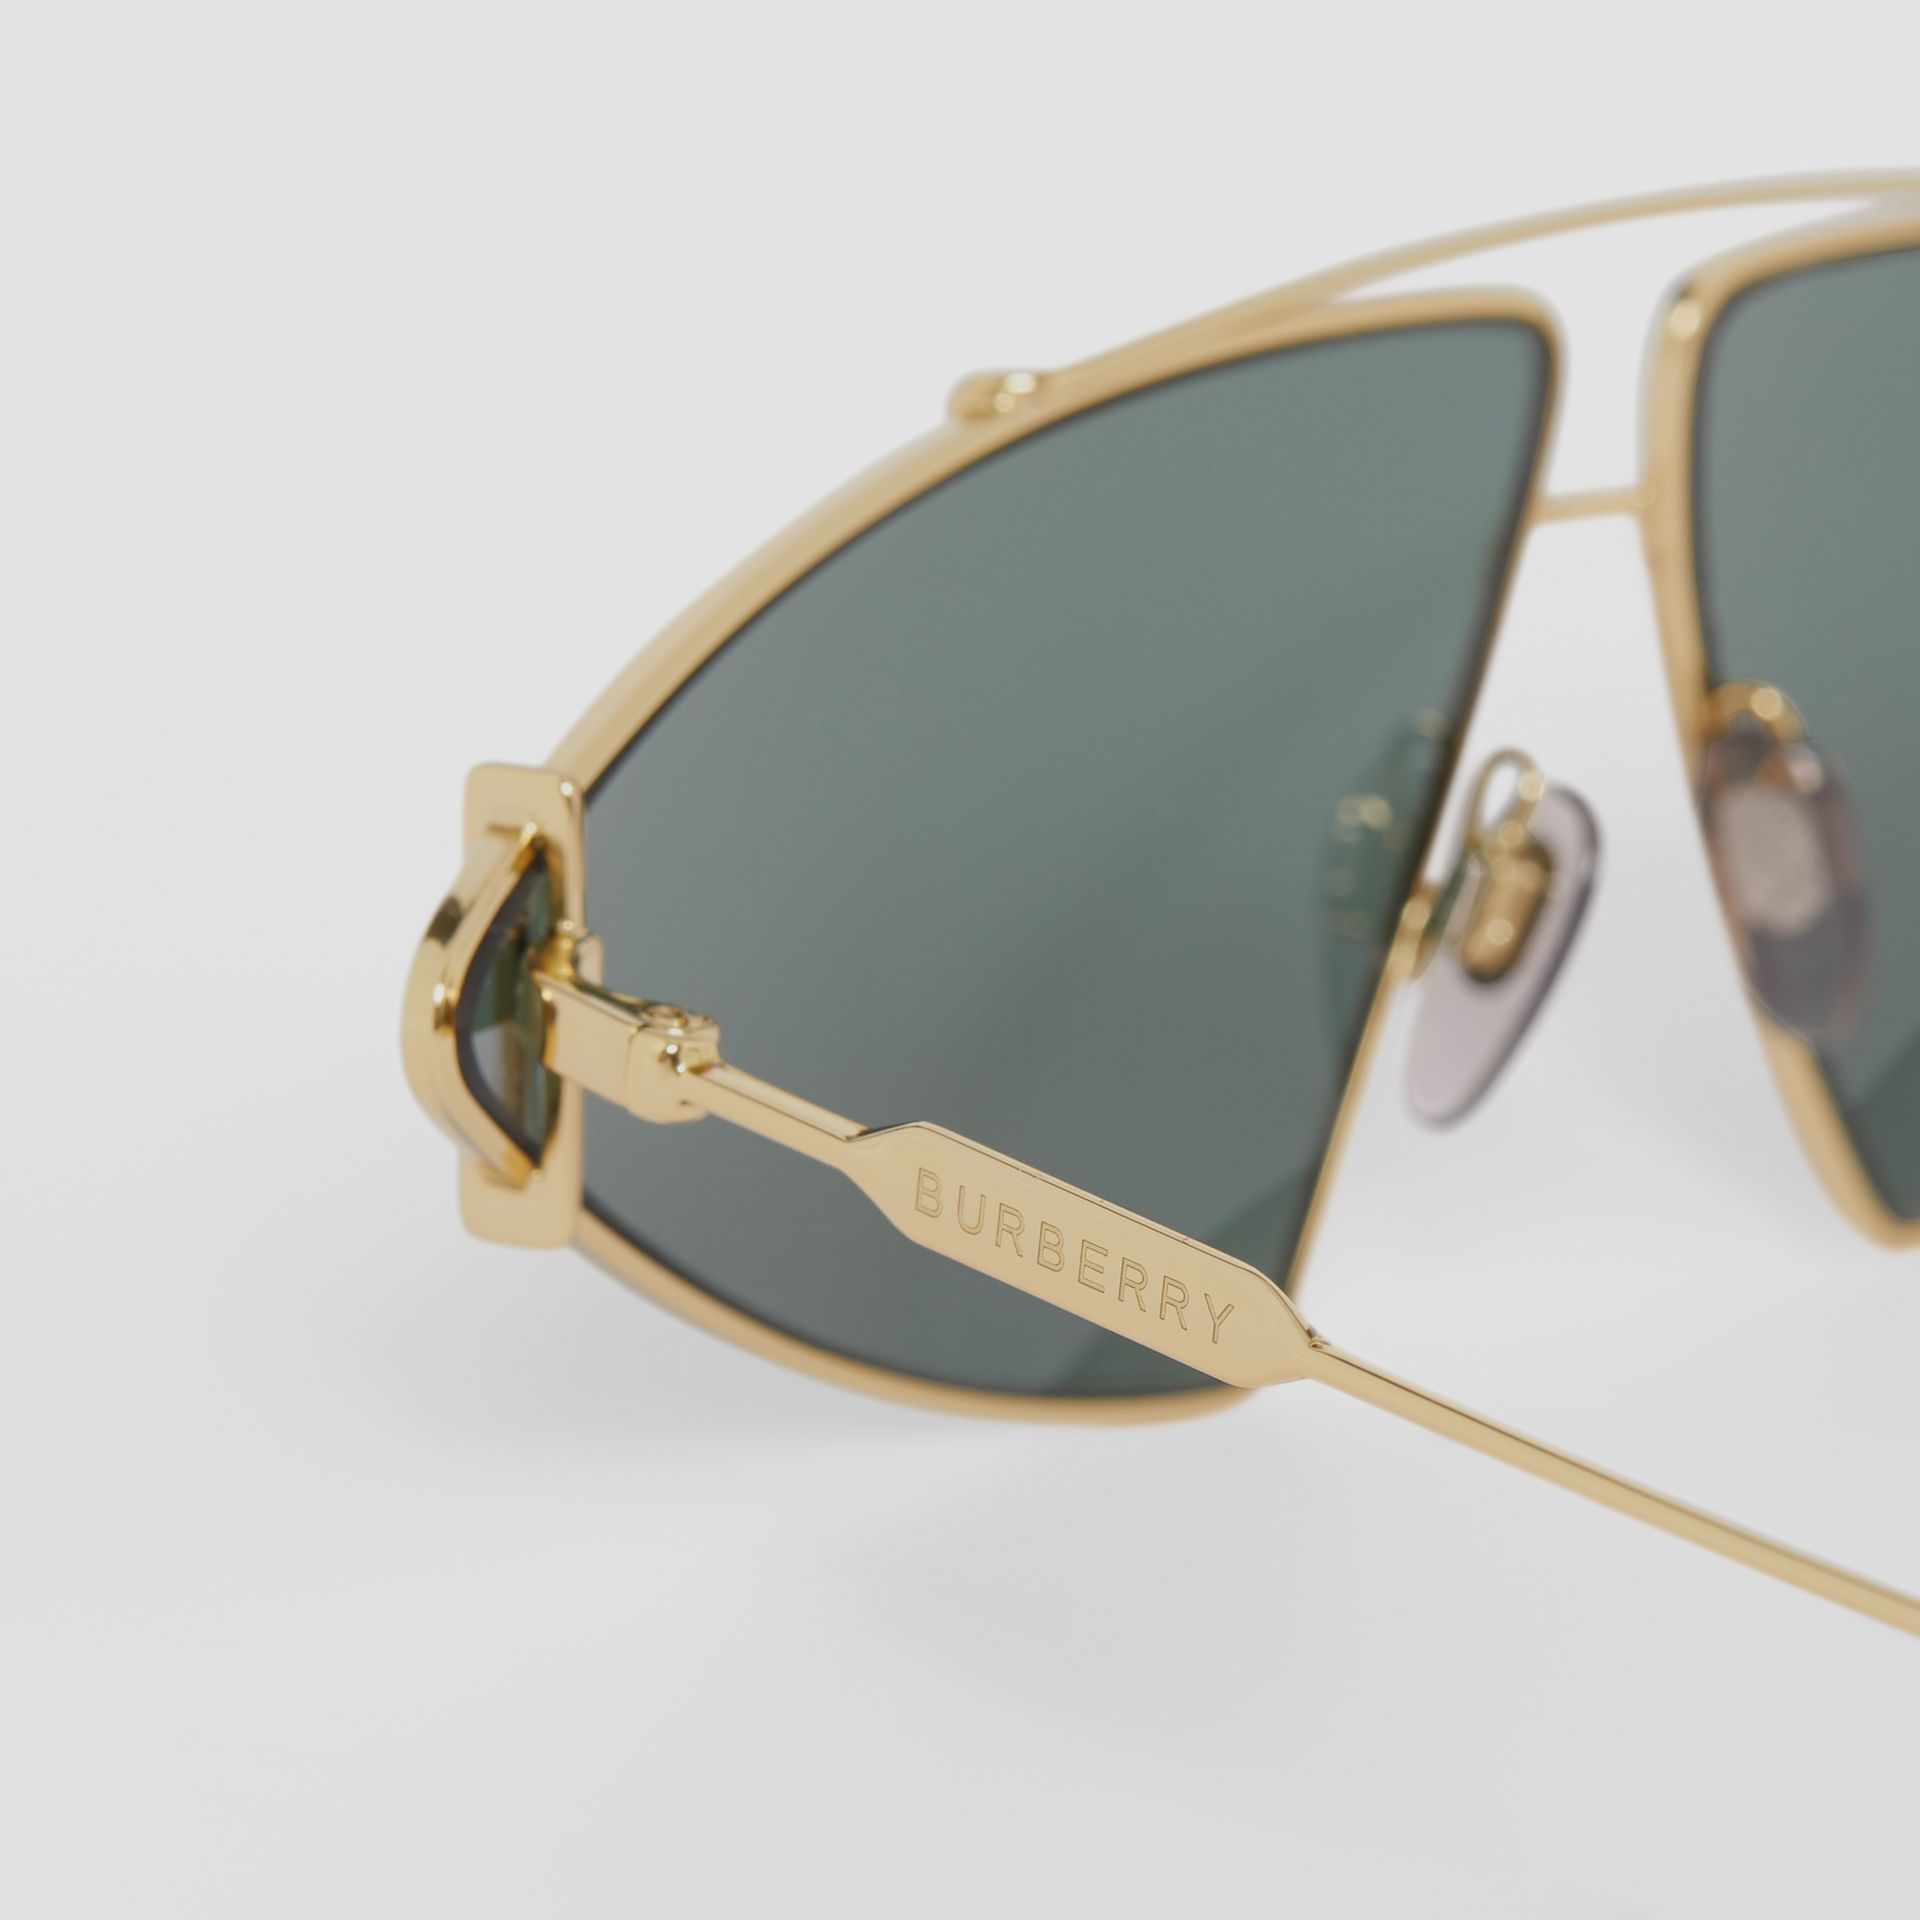 Gold-plated Triangular Frame Sunglasses in Pistachio - Women | Burberry - gallery image 1